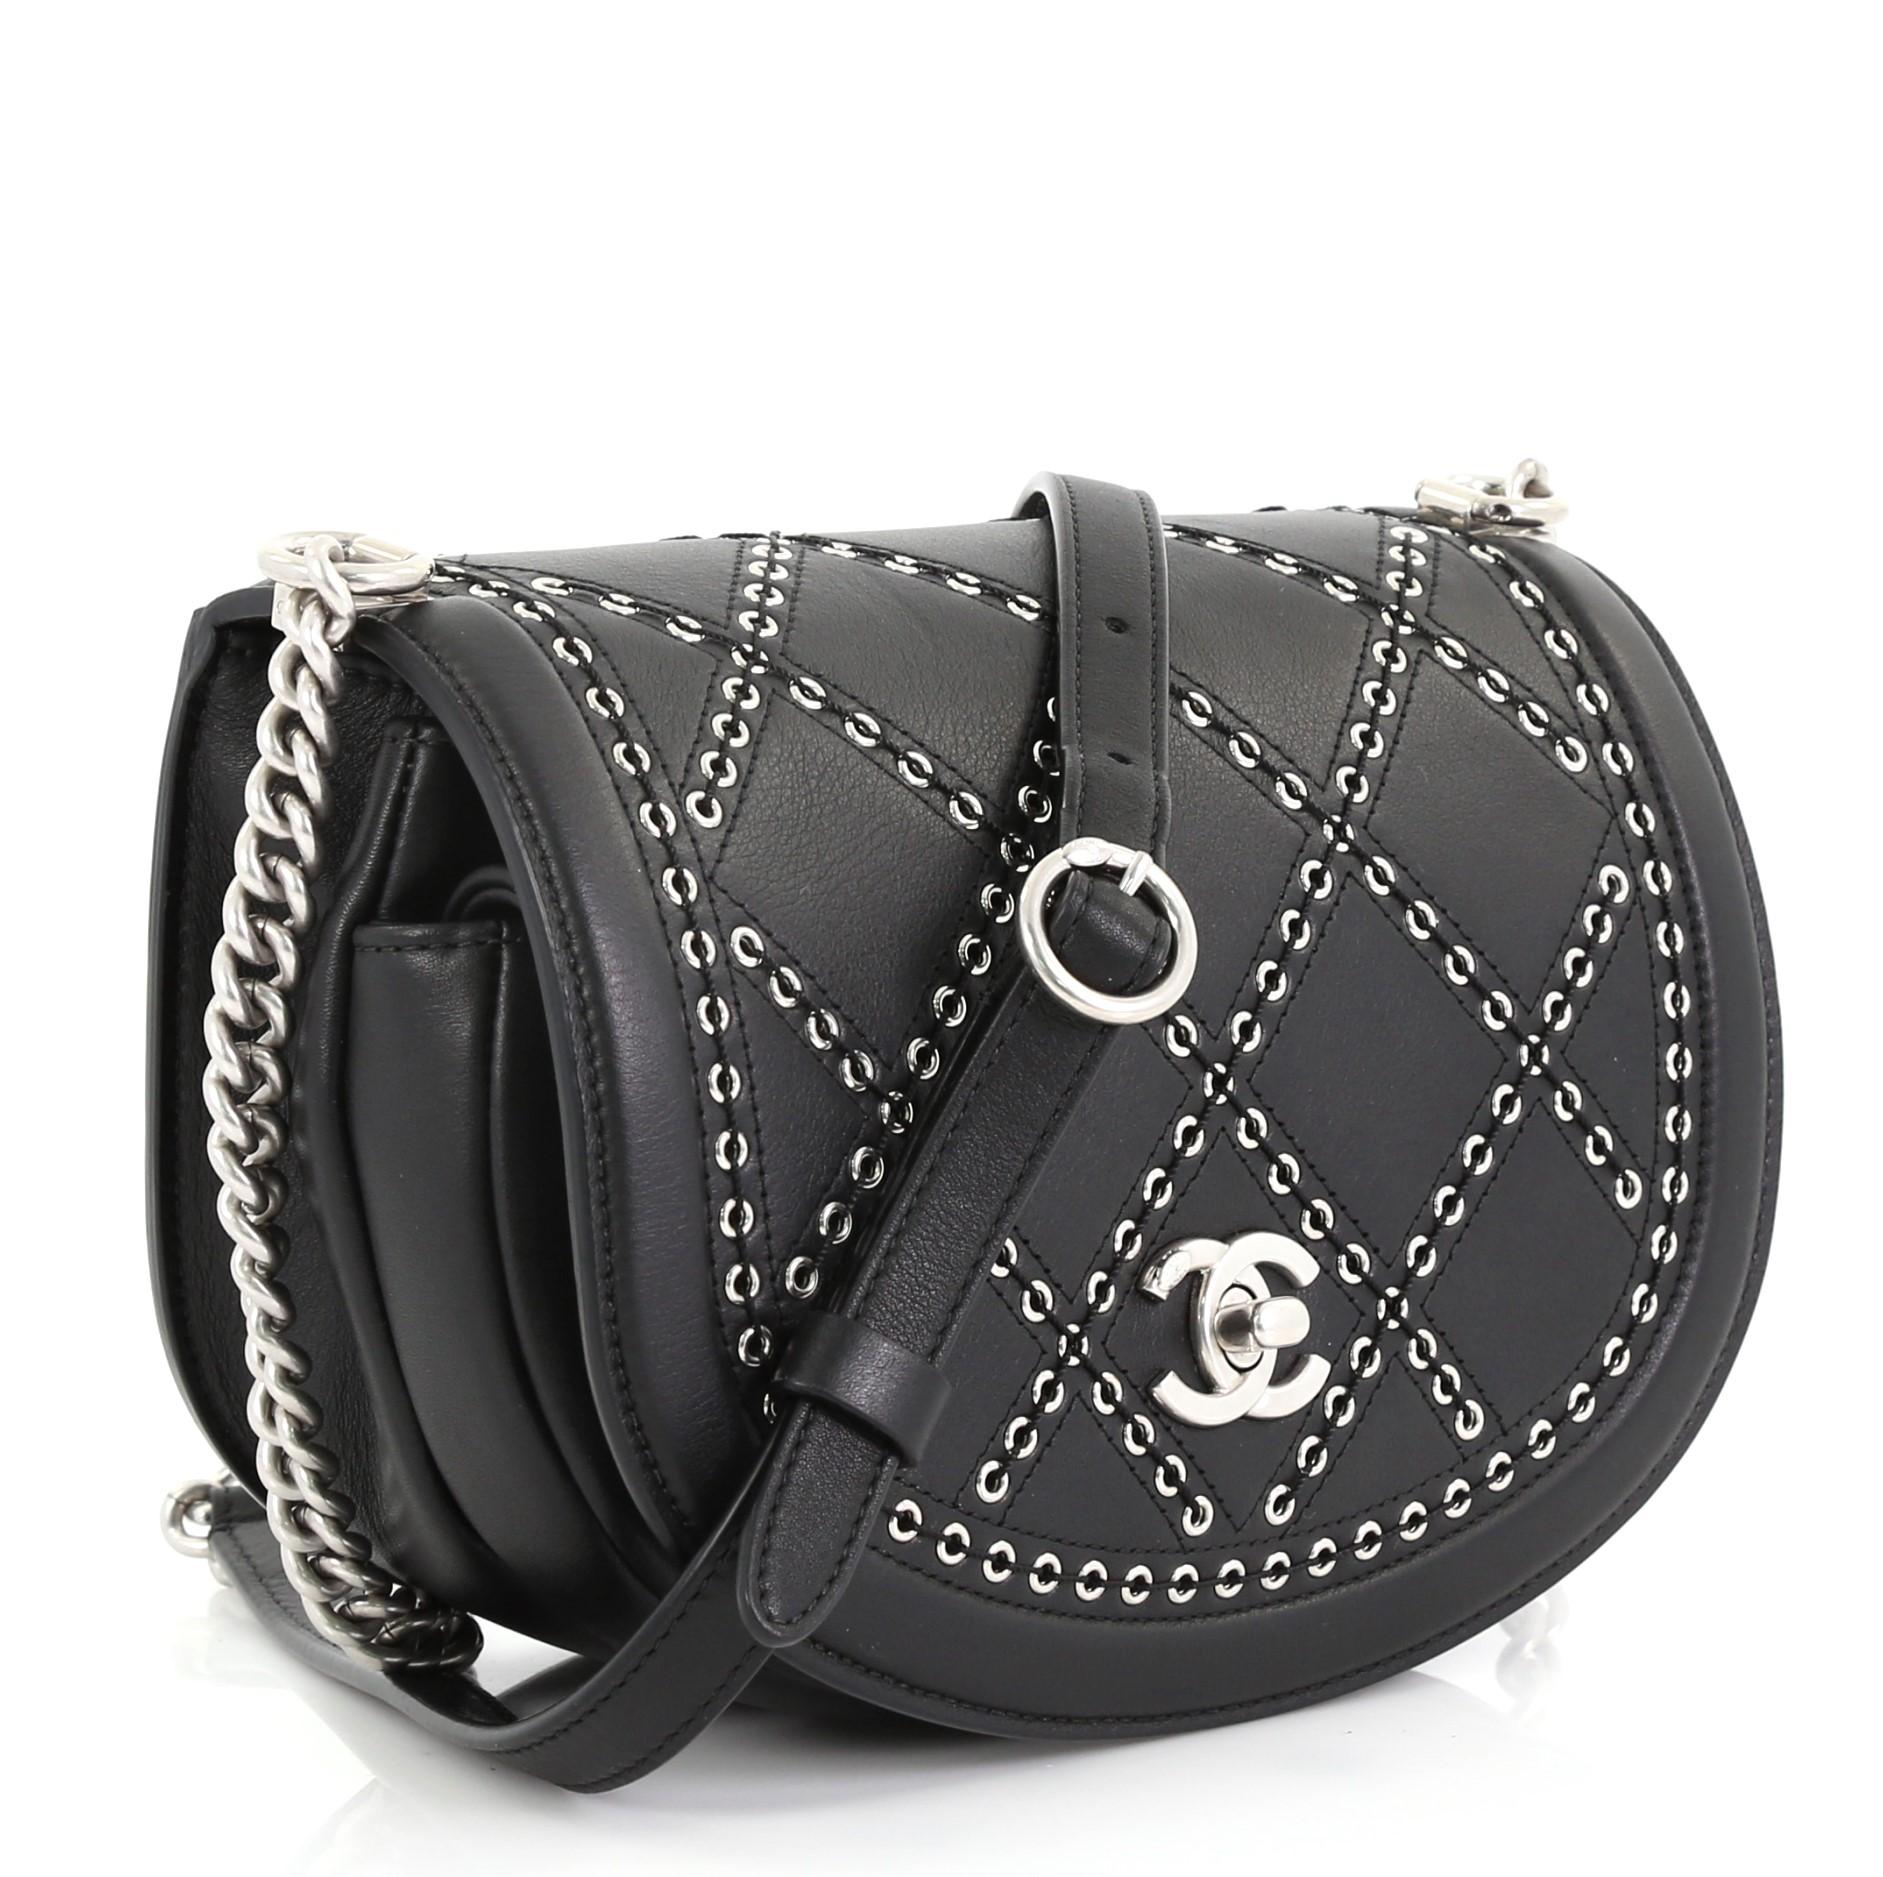 275b5e20d306 Chanel Coco Eyelets Round Flap Bag Quilted Calfskin Small For Sale at  1stdibs